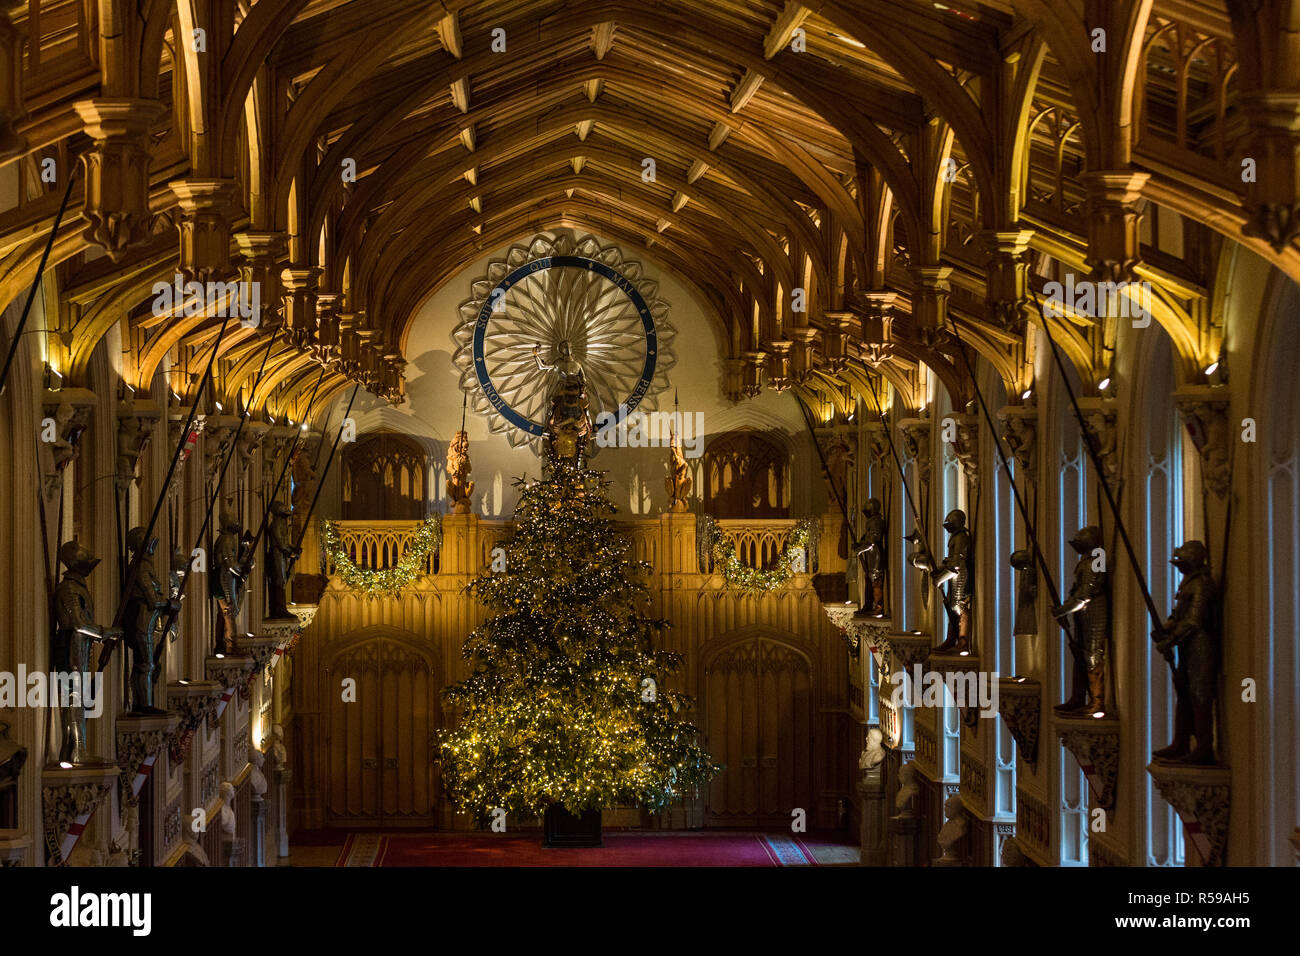 Windsor, UK. 30th Nov, 2018. The State Apartments at Windsor Castle have been decorated with glittering Christmas trees and twinkling lights for Christmas. Seen here in St George's Hall a striking 20ft Nordmann Fir tree from Windsor Great Park dressed in gold. A 15ft Christmas tree also appears in the Crimson Drawing Room. Credit: Mark Kerrison/Alamy Live News - Stock Image